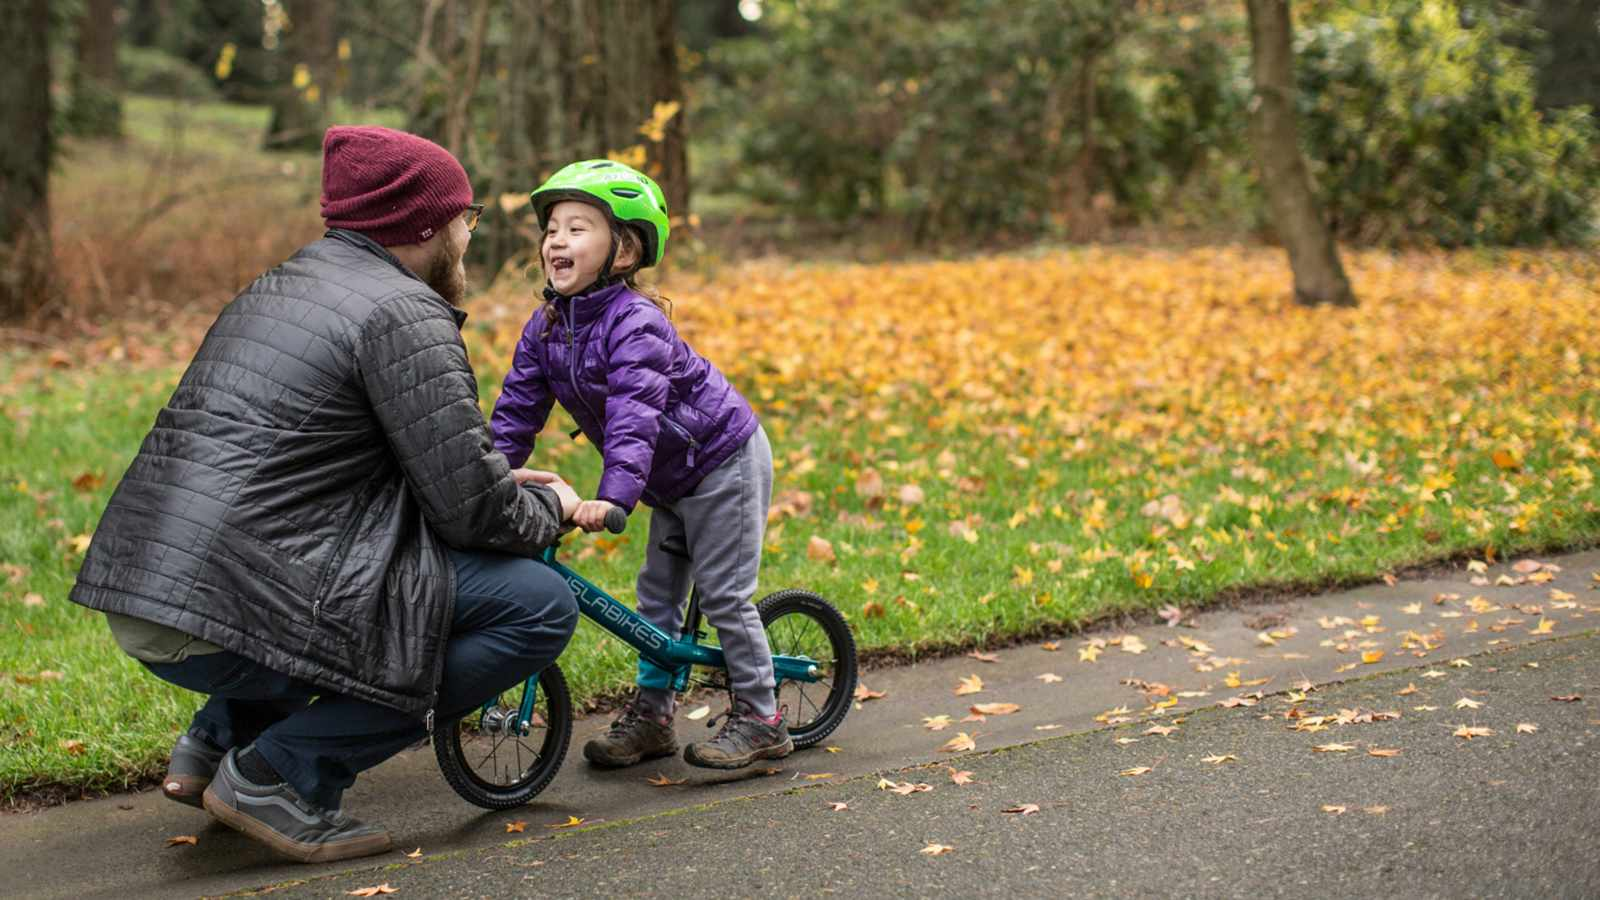 Islabikes is closing its doors in the US and offering discounts across the range